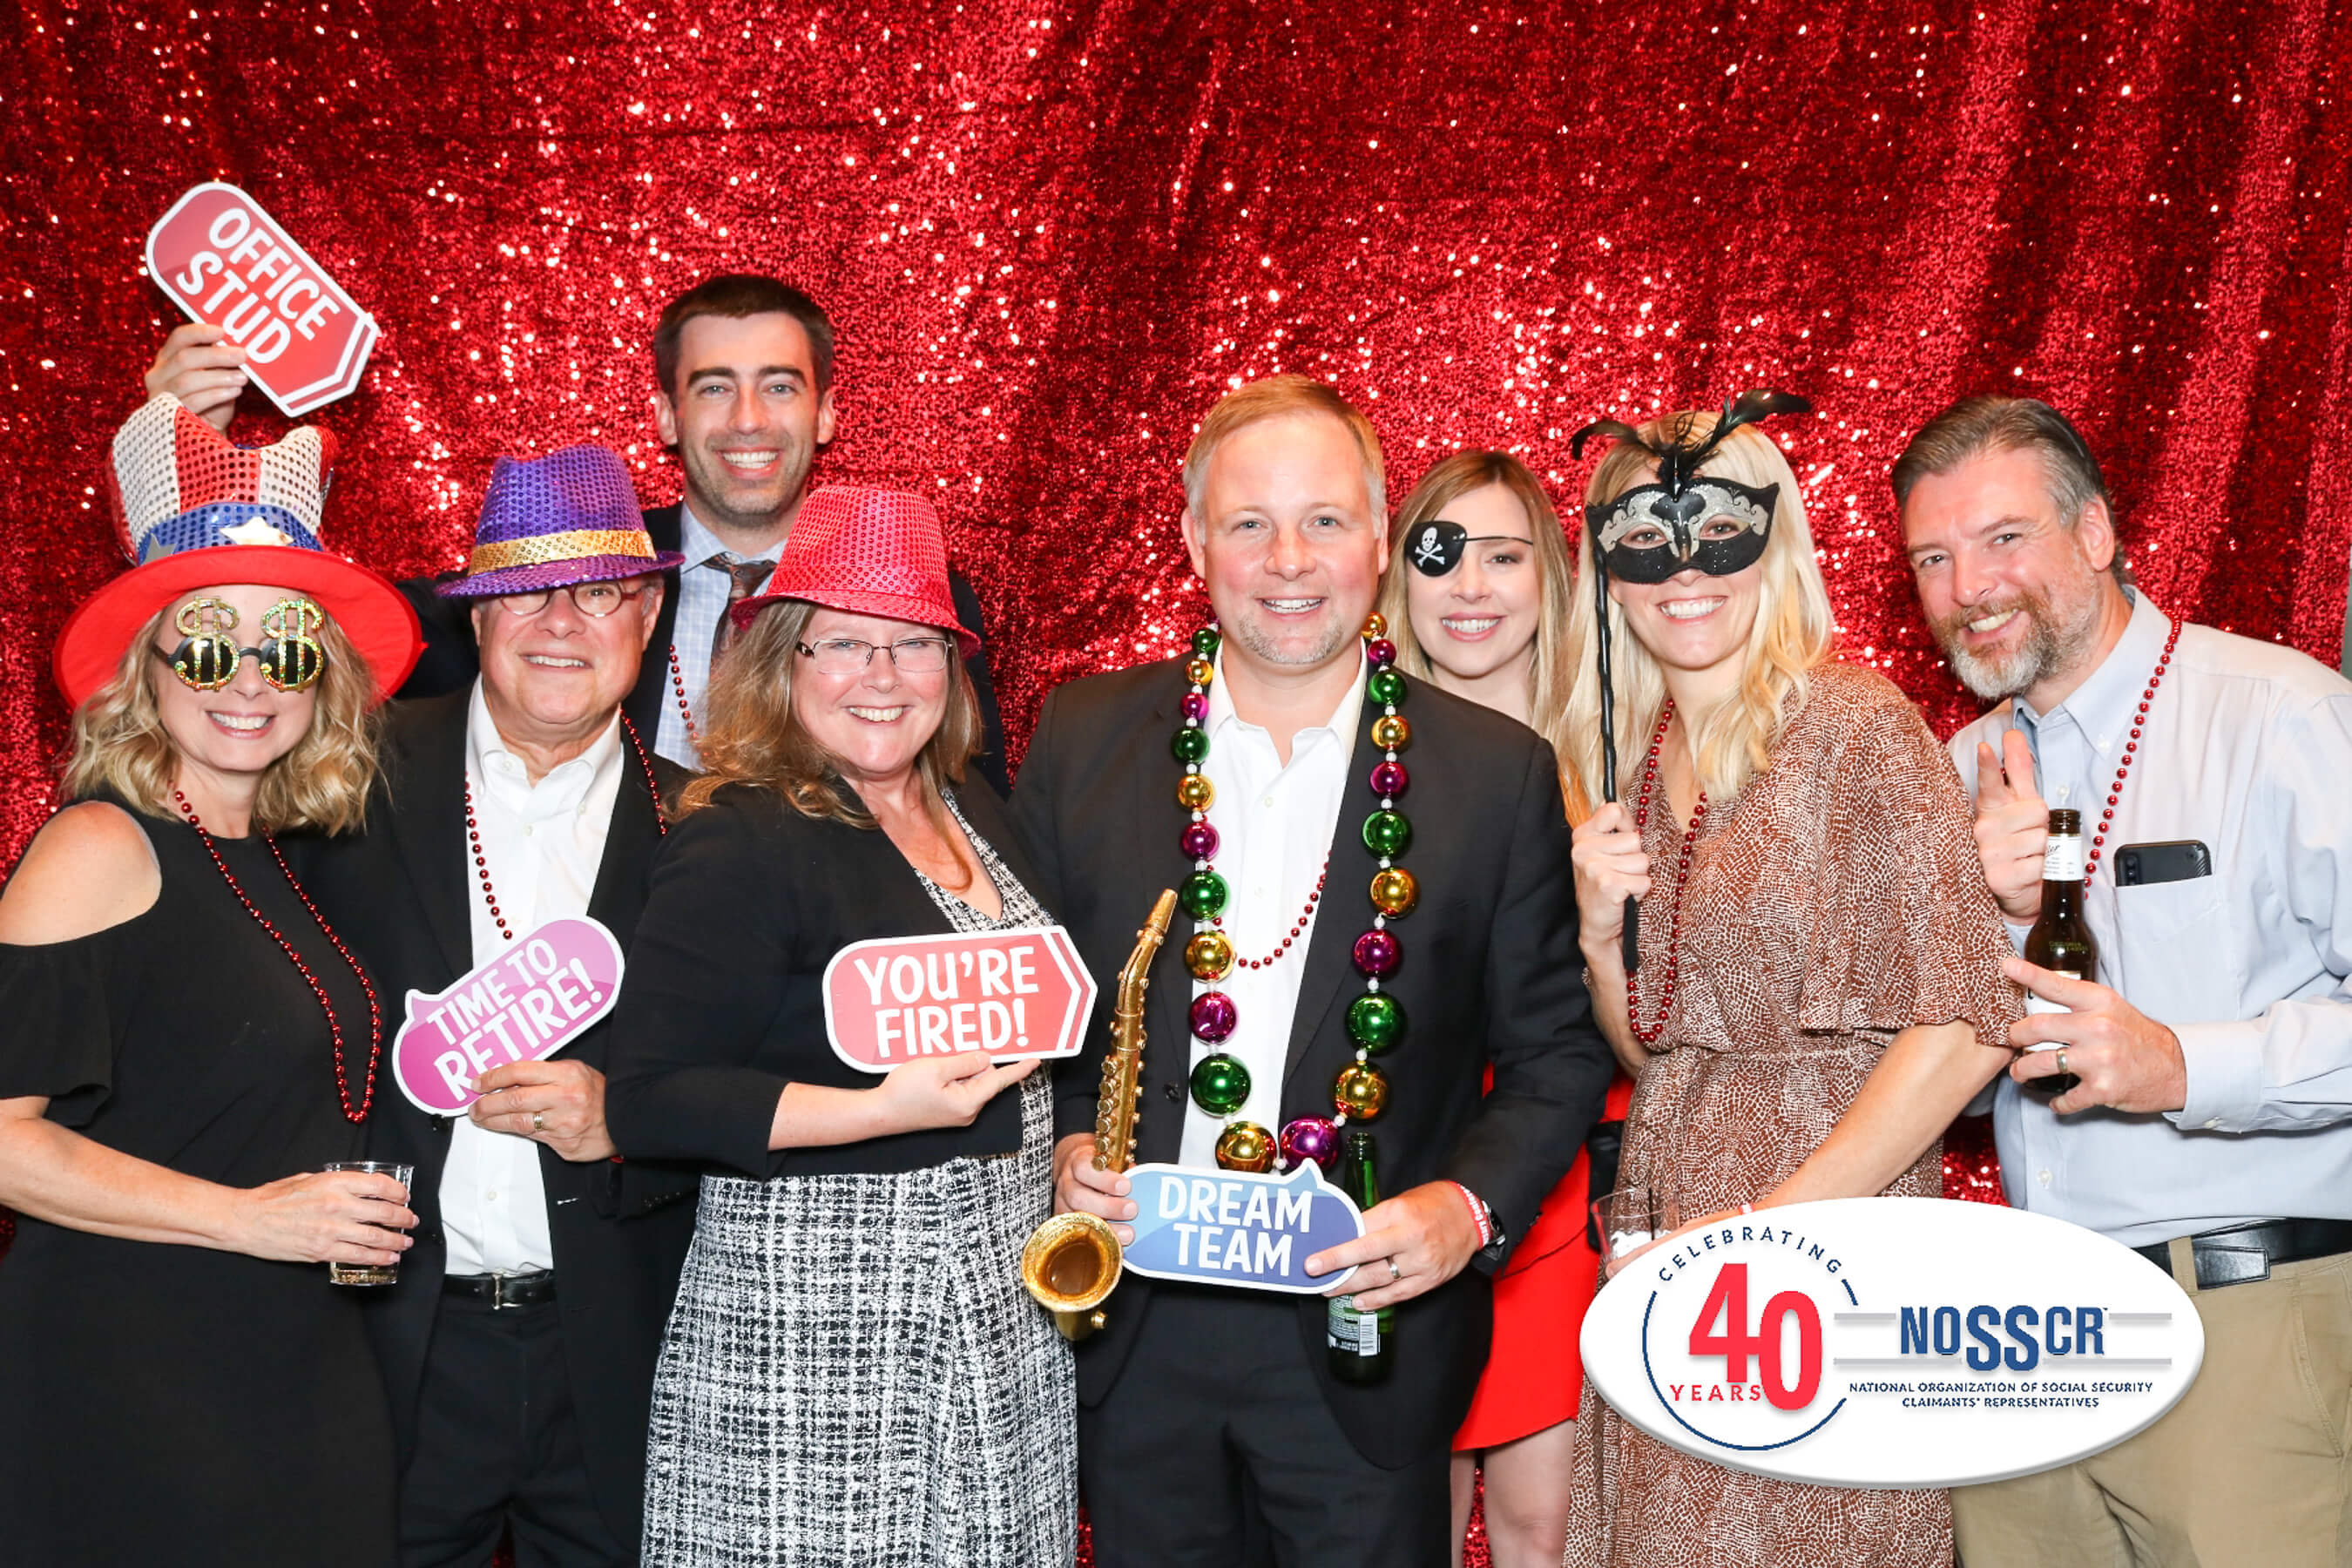 Group of people celebrating with event photo booth rental